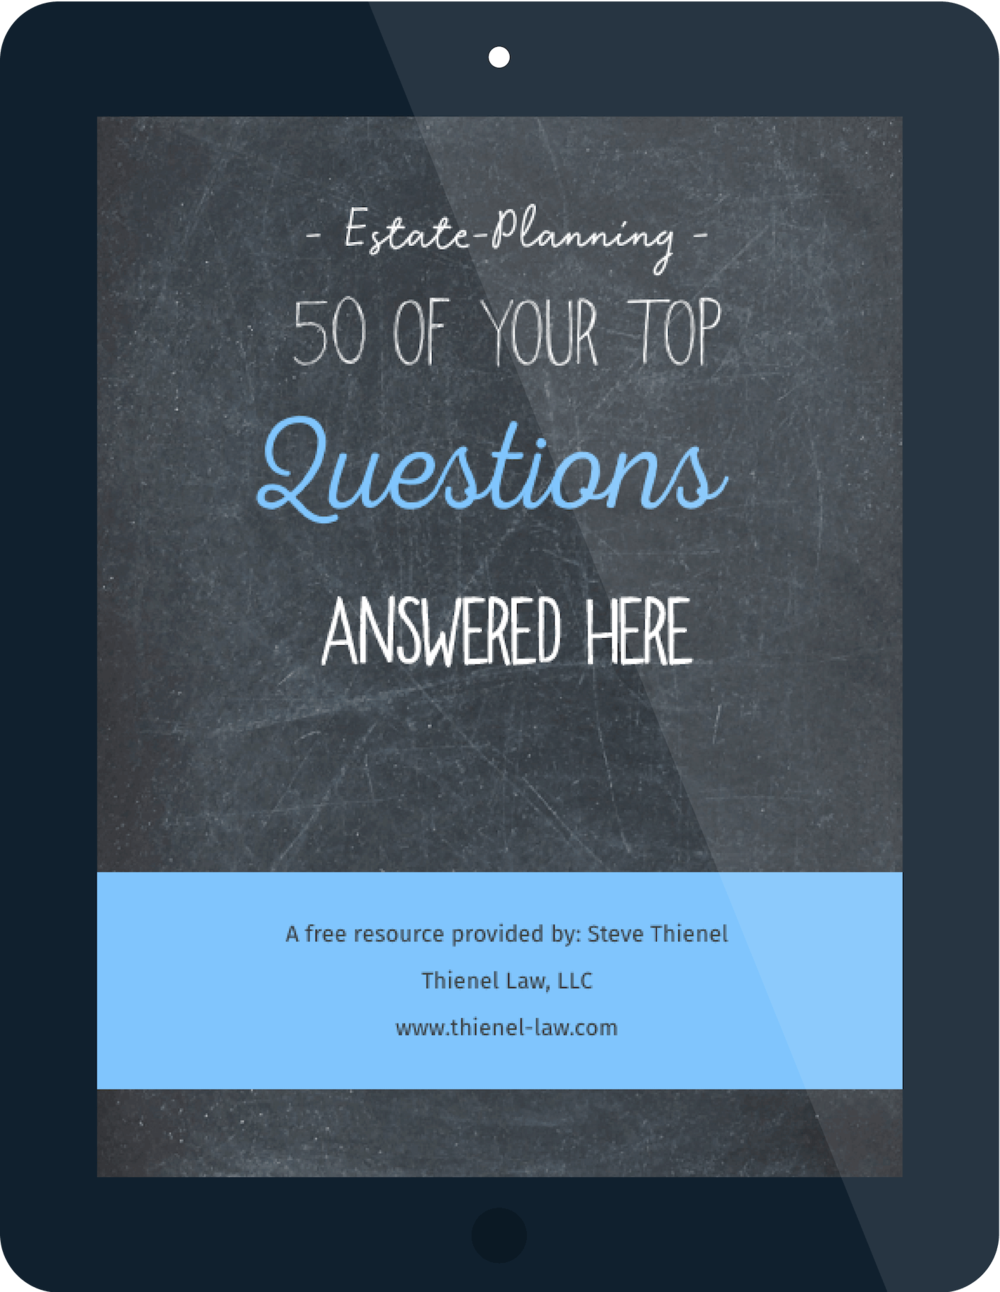 Estate-Planning - Top 50 Questions and Answers